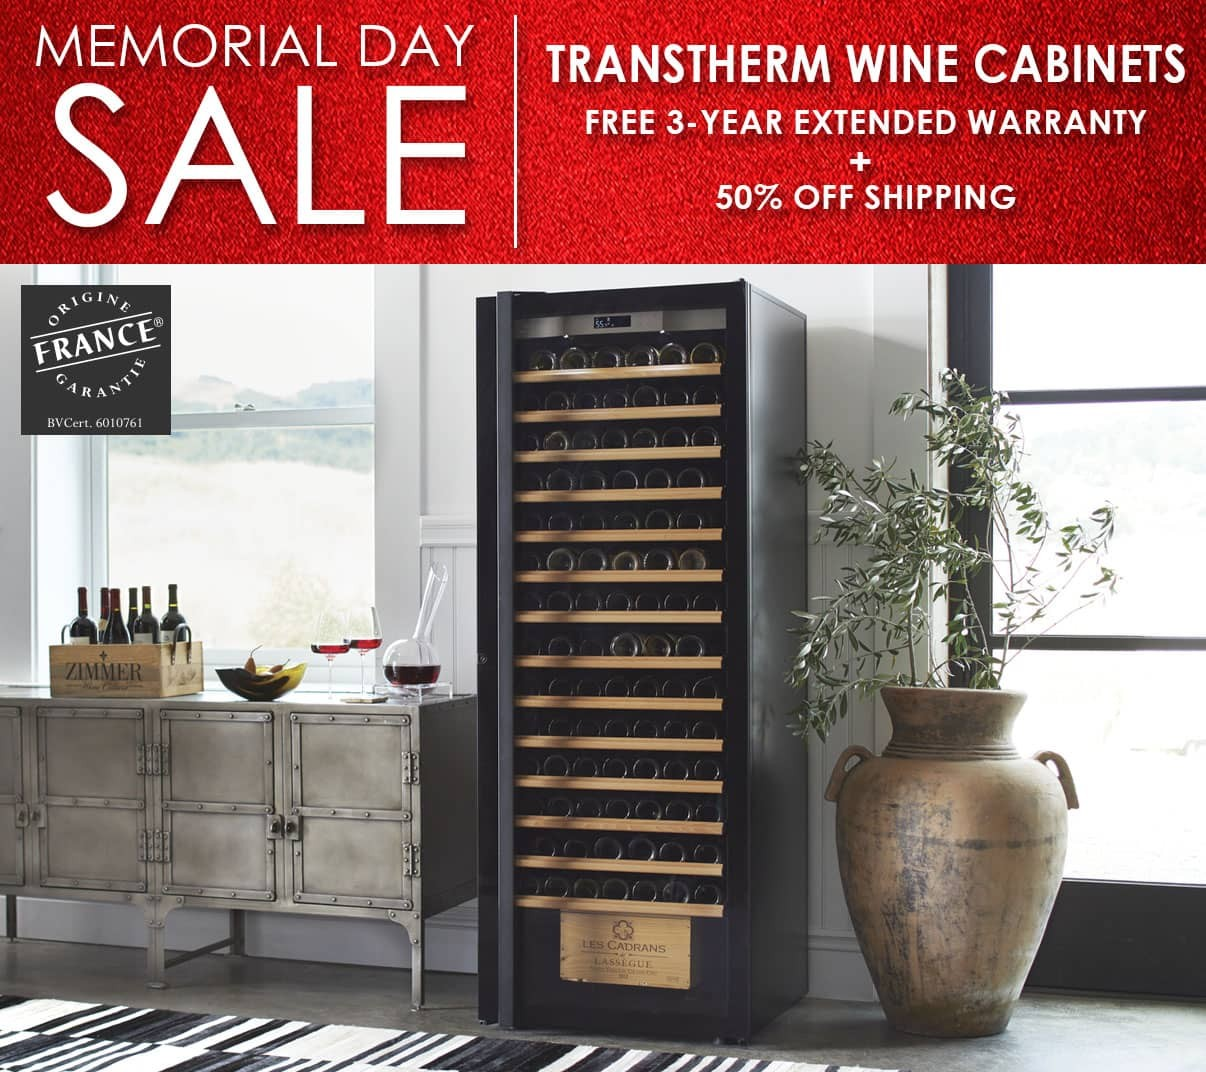 Memorial Day Weekend Sale - Transtherm Wine Cabinets Free 3-Year Extended Warranty + 50% Off Shipping